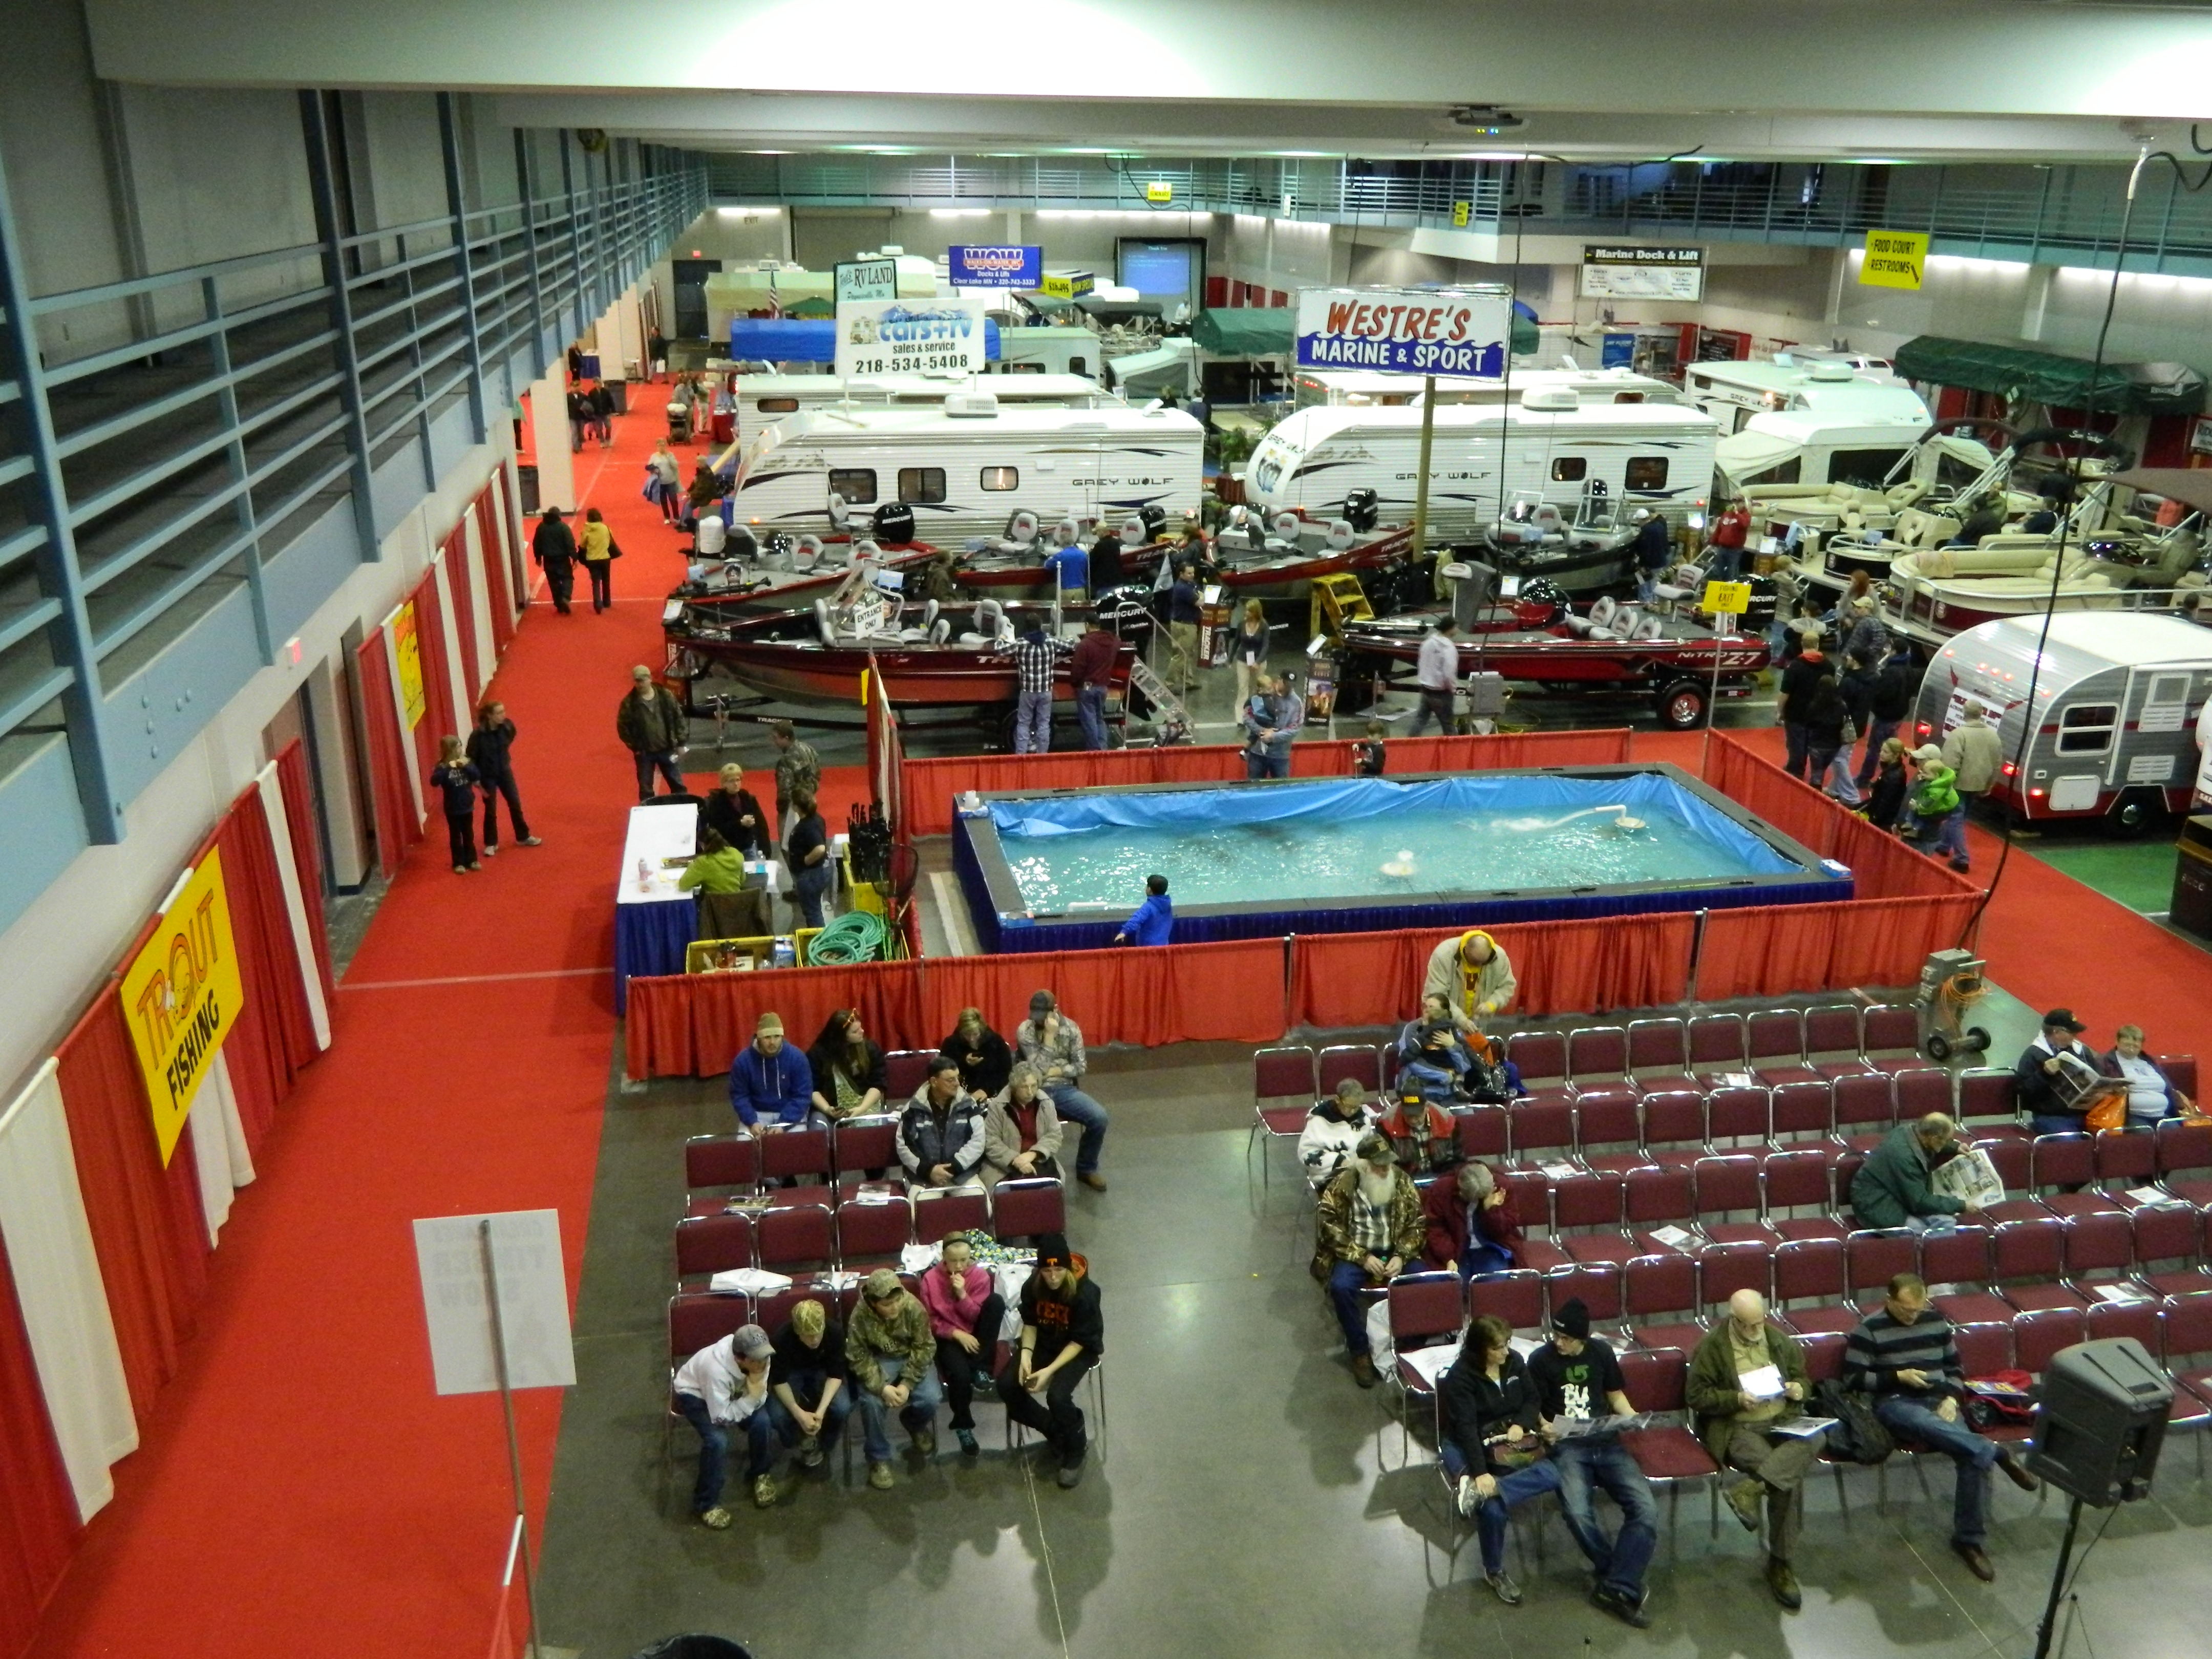 Aerial view of people, RVs, and exhibits in convention hall for Sportsmen's Show 2012